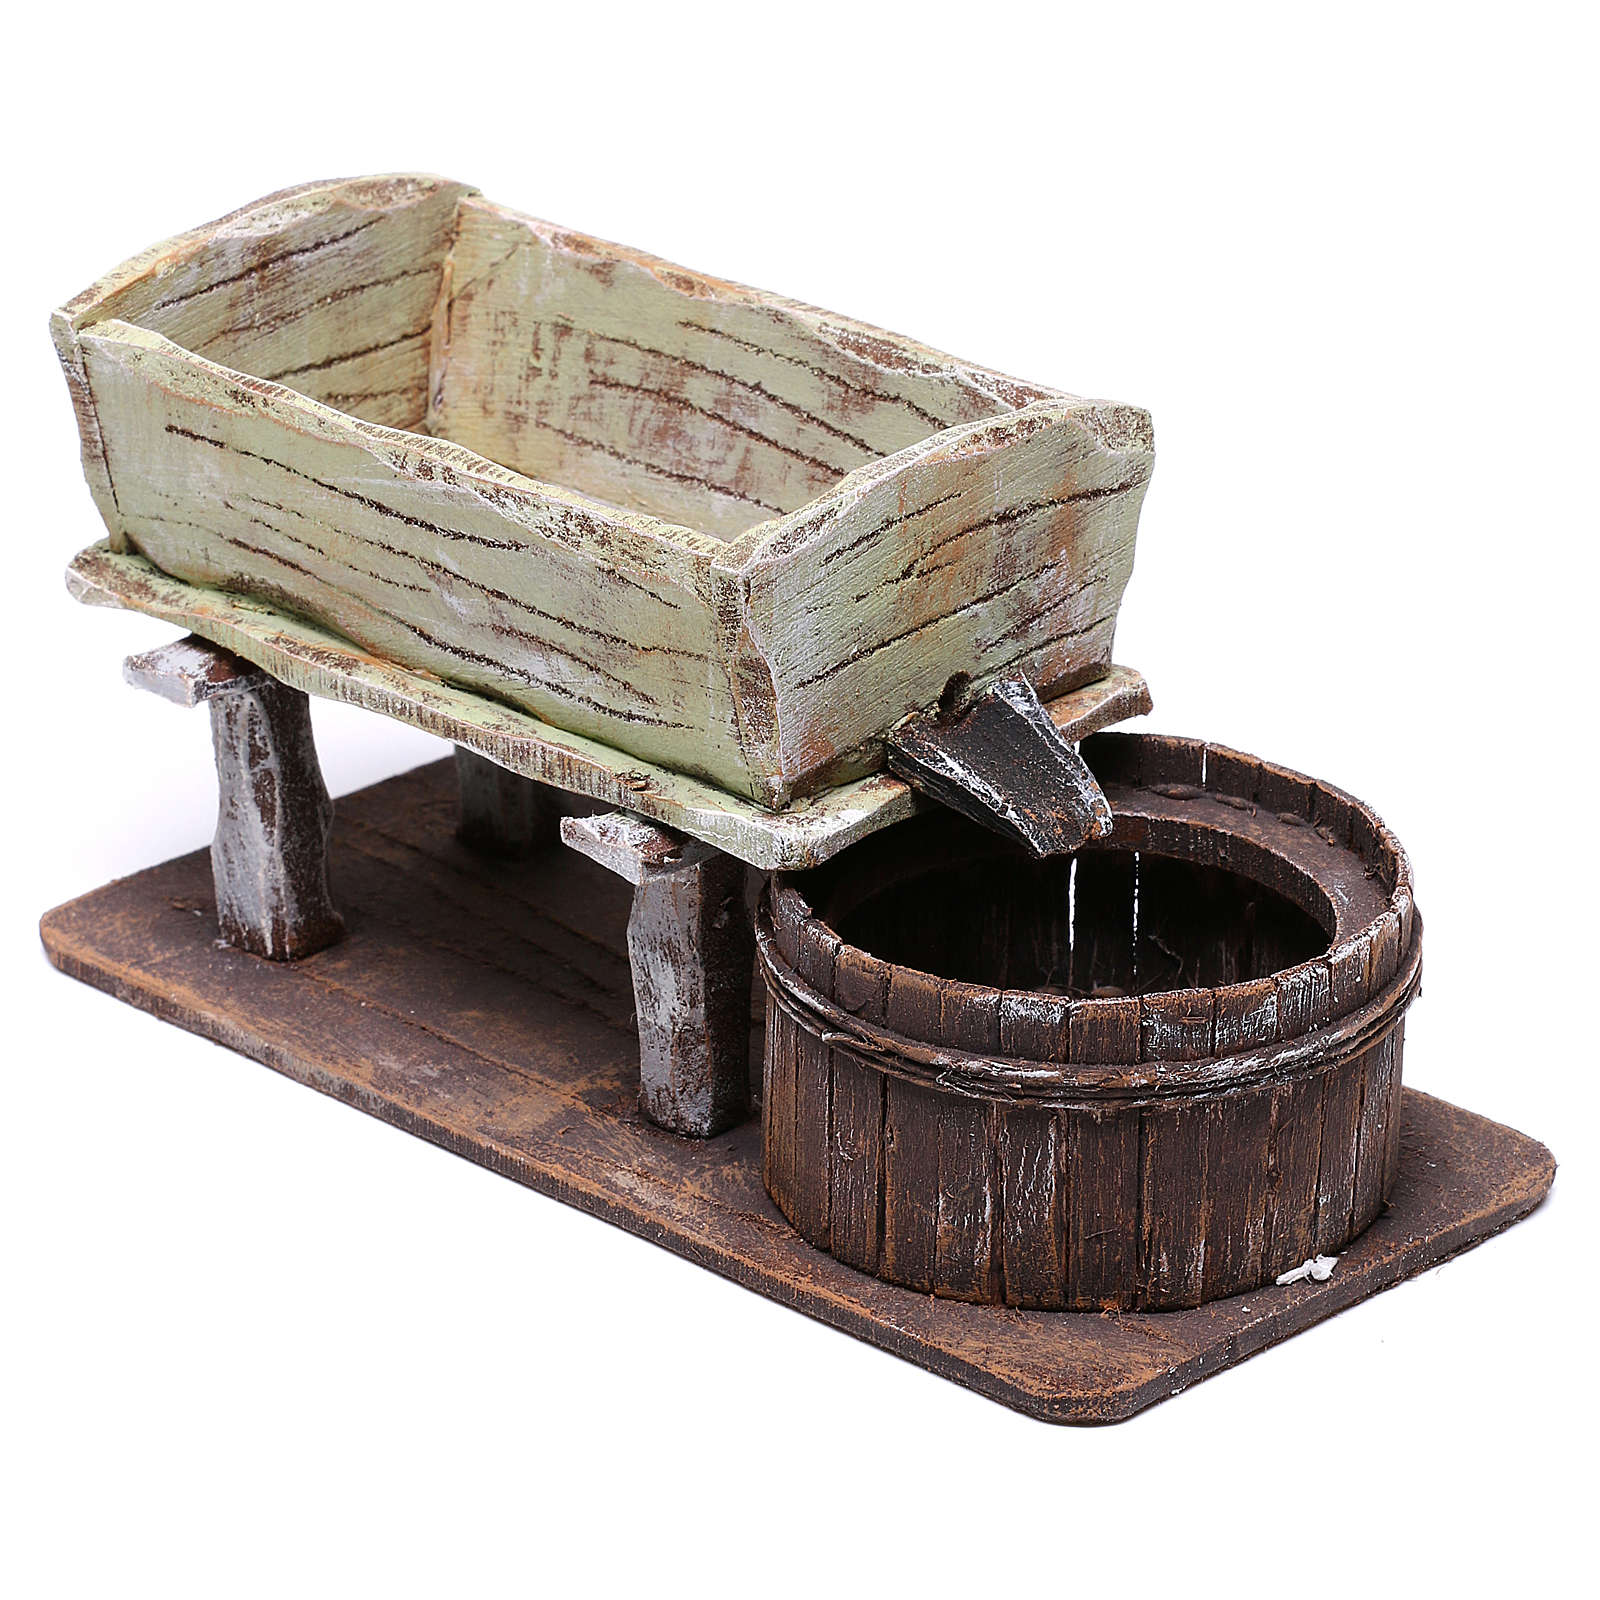 Grape pressing tank 20x15x5 cm, for 10 cm nativity 4